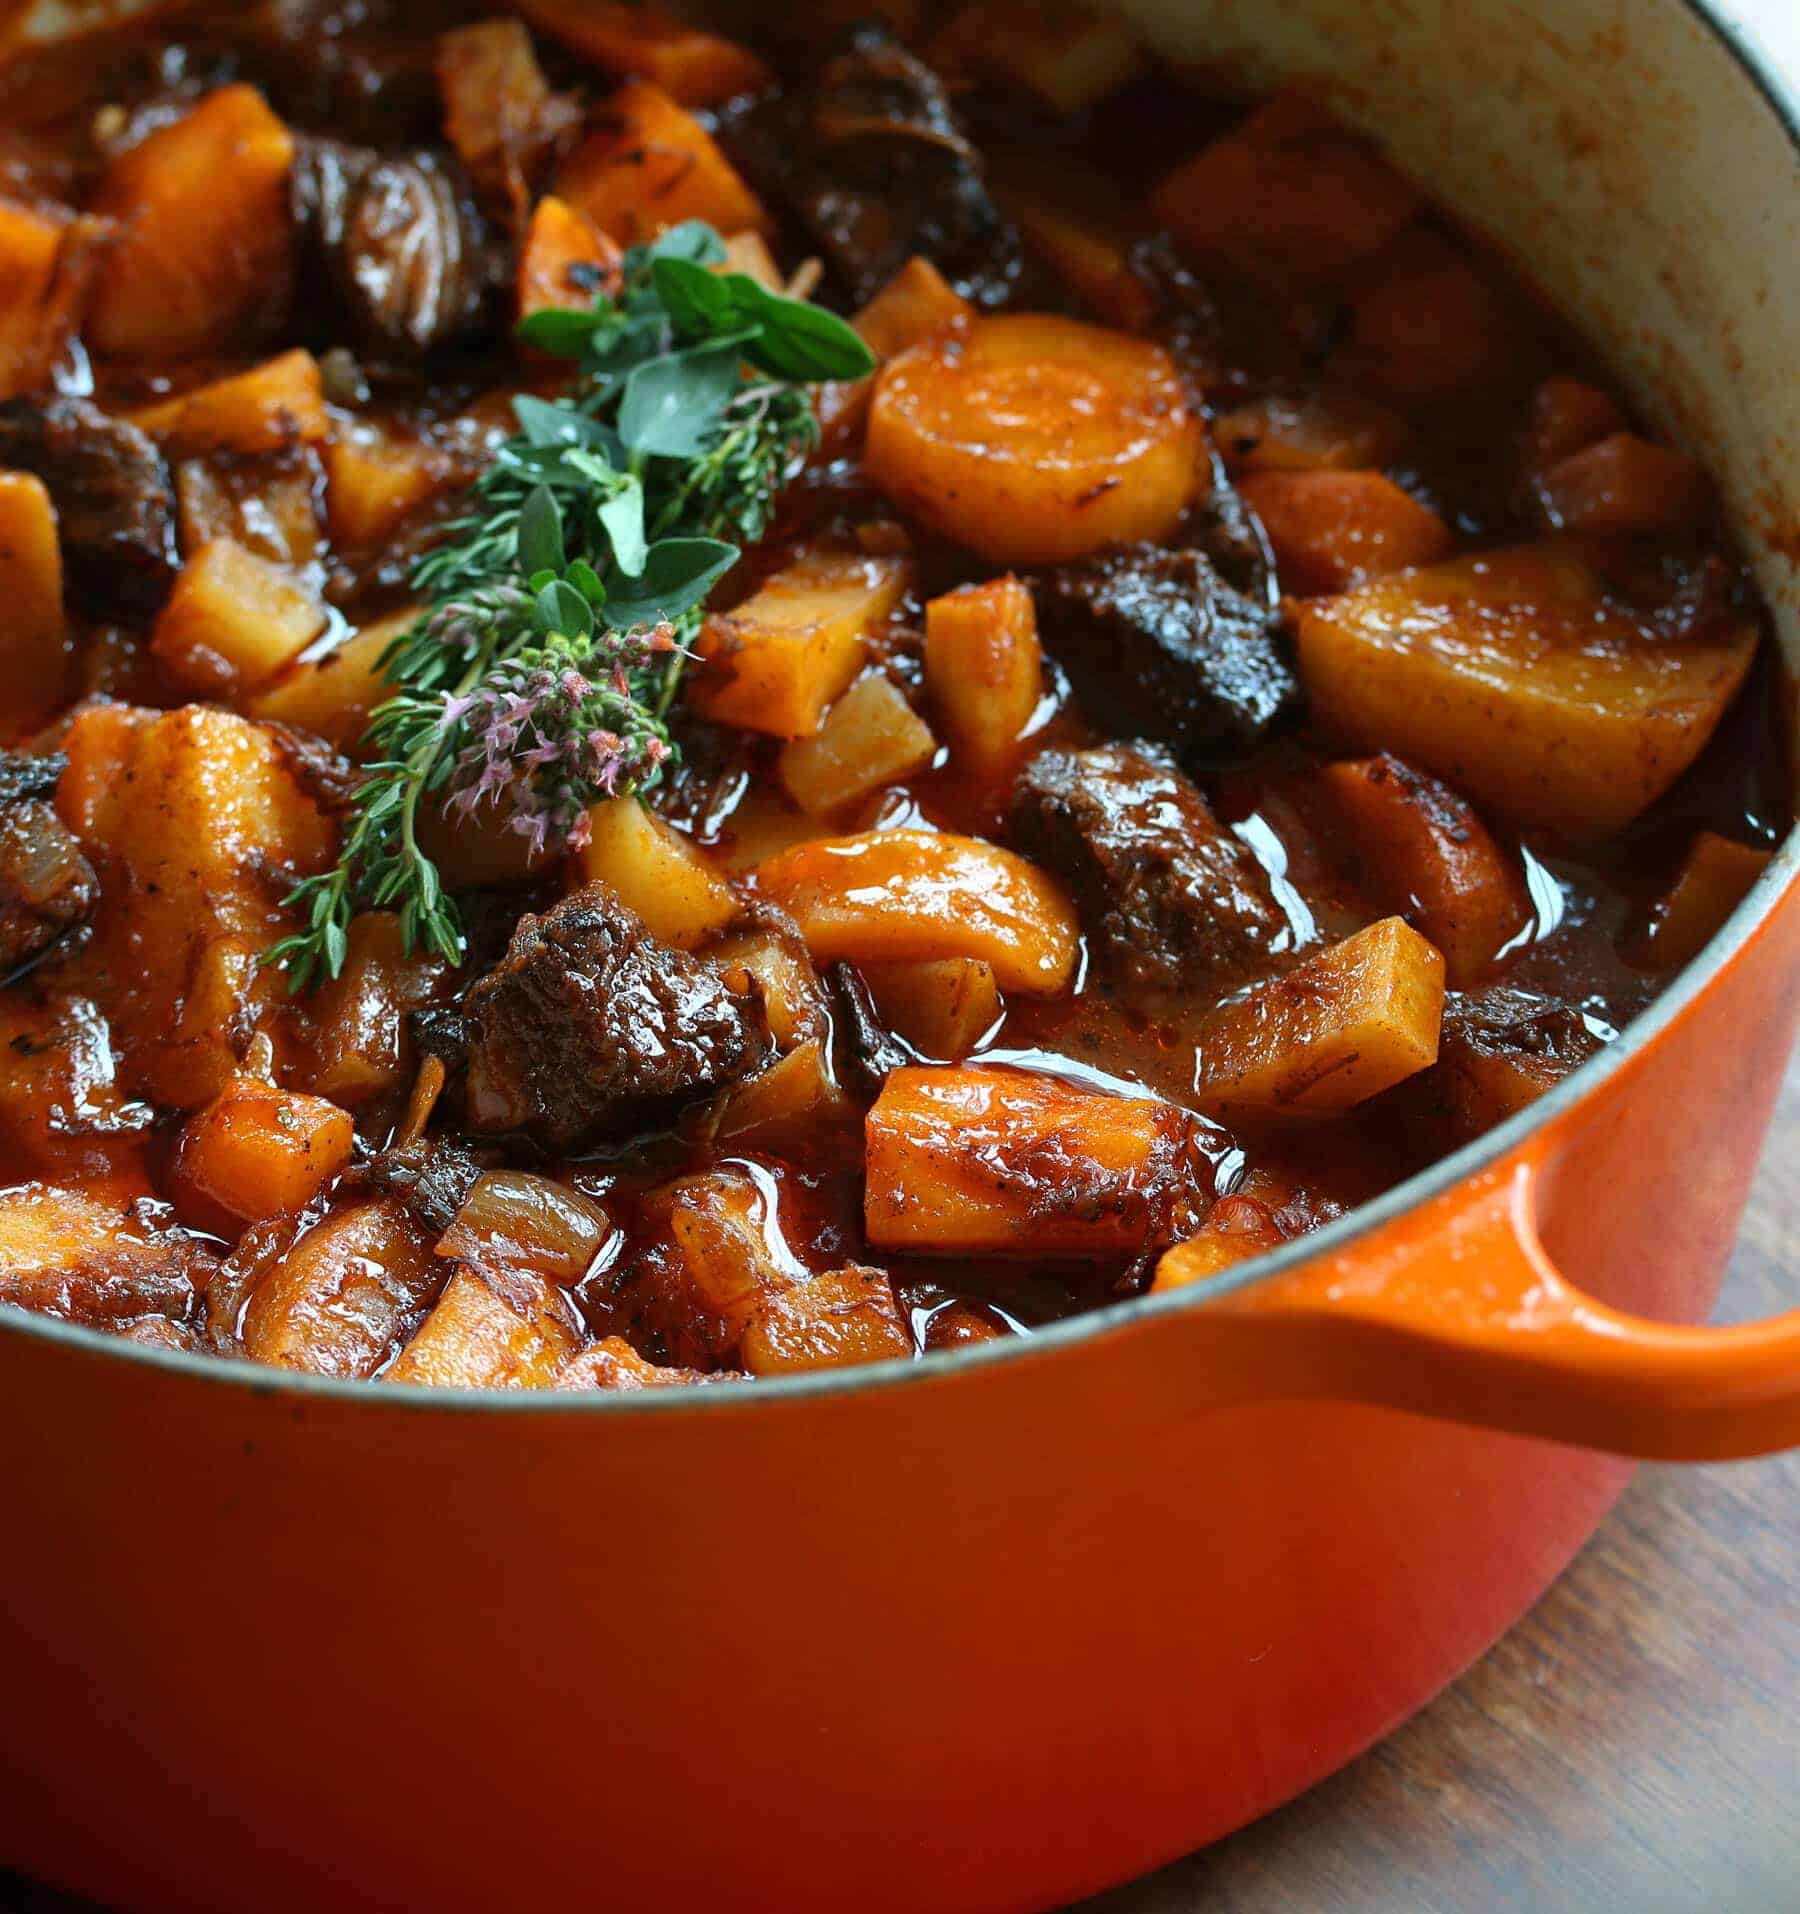 French Beef Stew With Old Fashioned Vegetables The Daring Gourmet